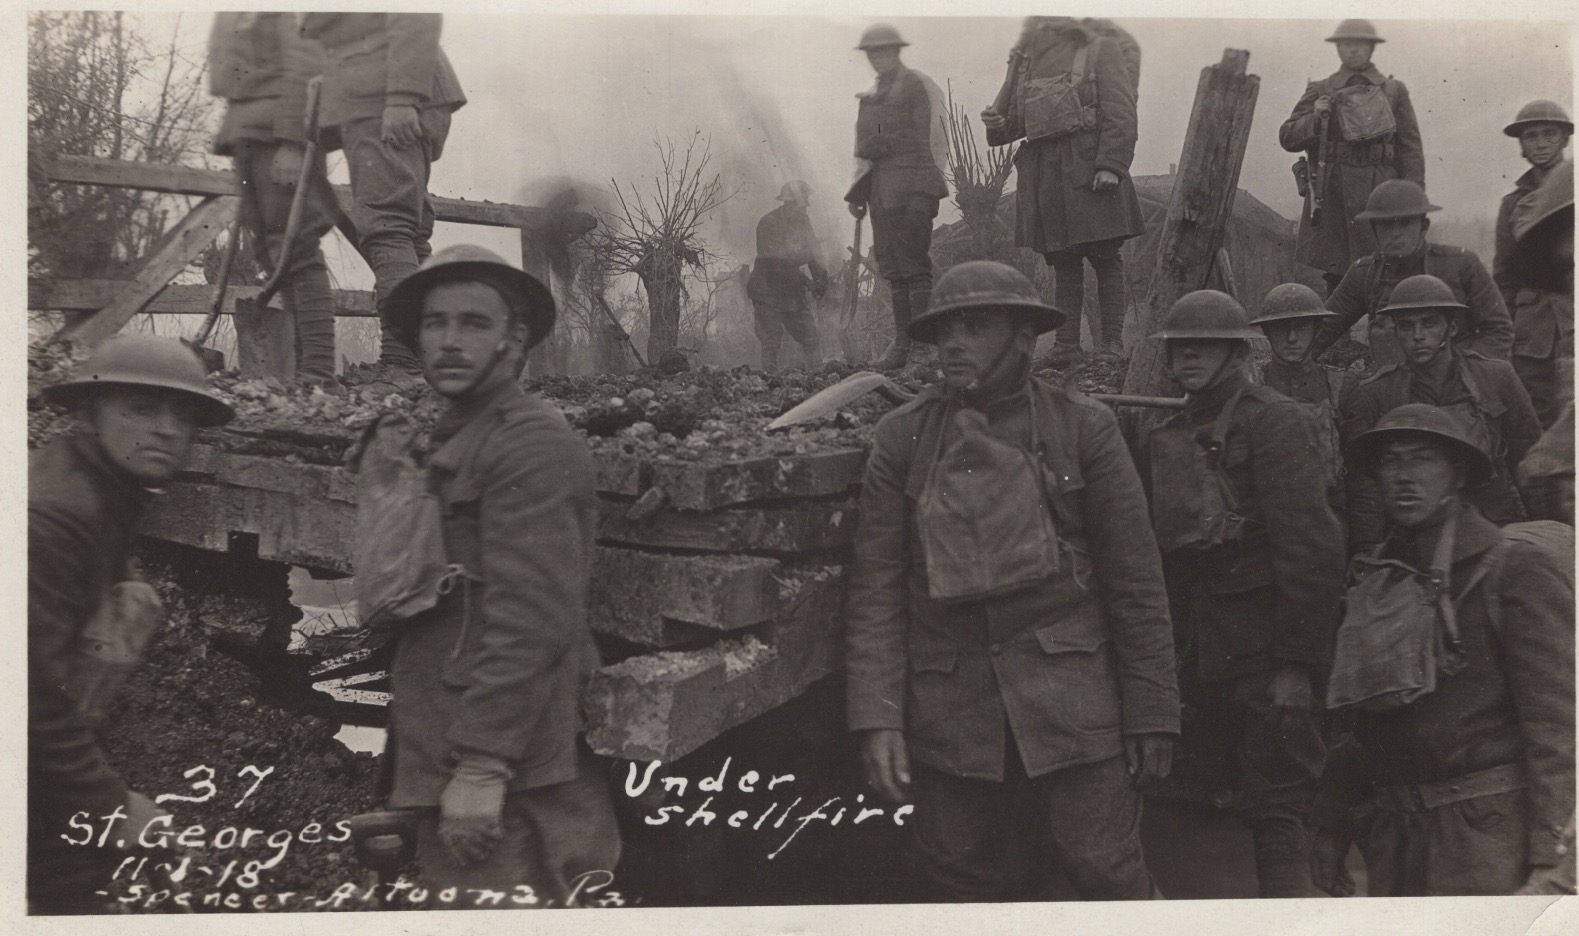 WWI soldiers under shellfire in France